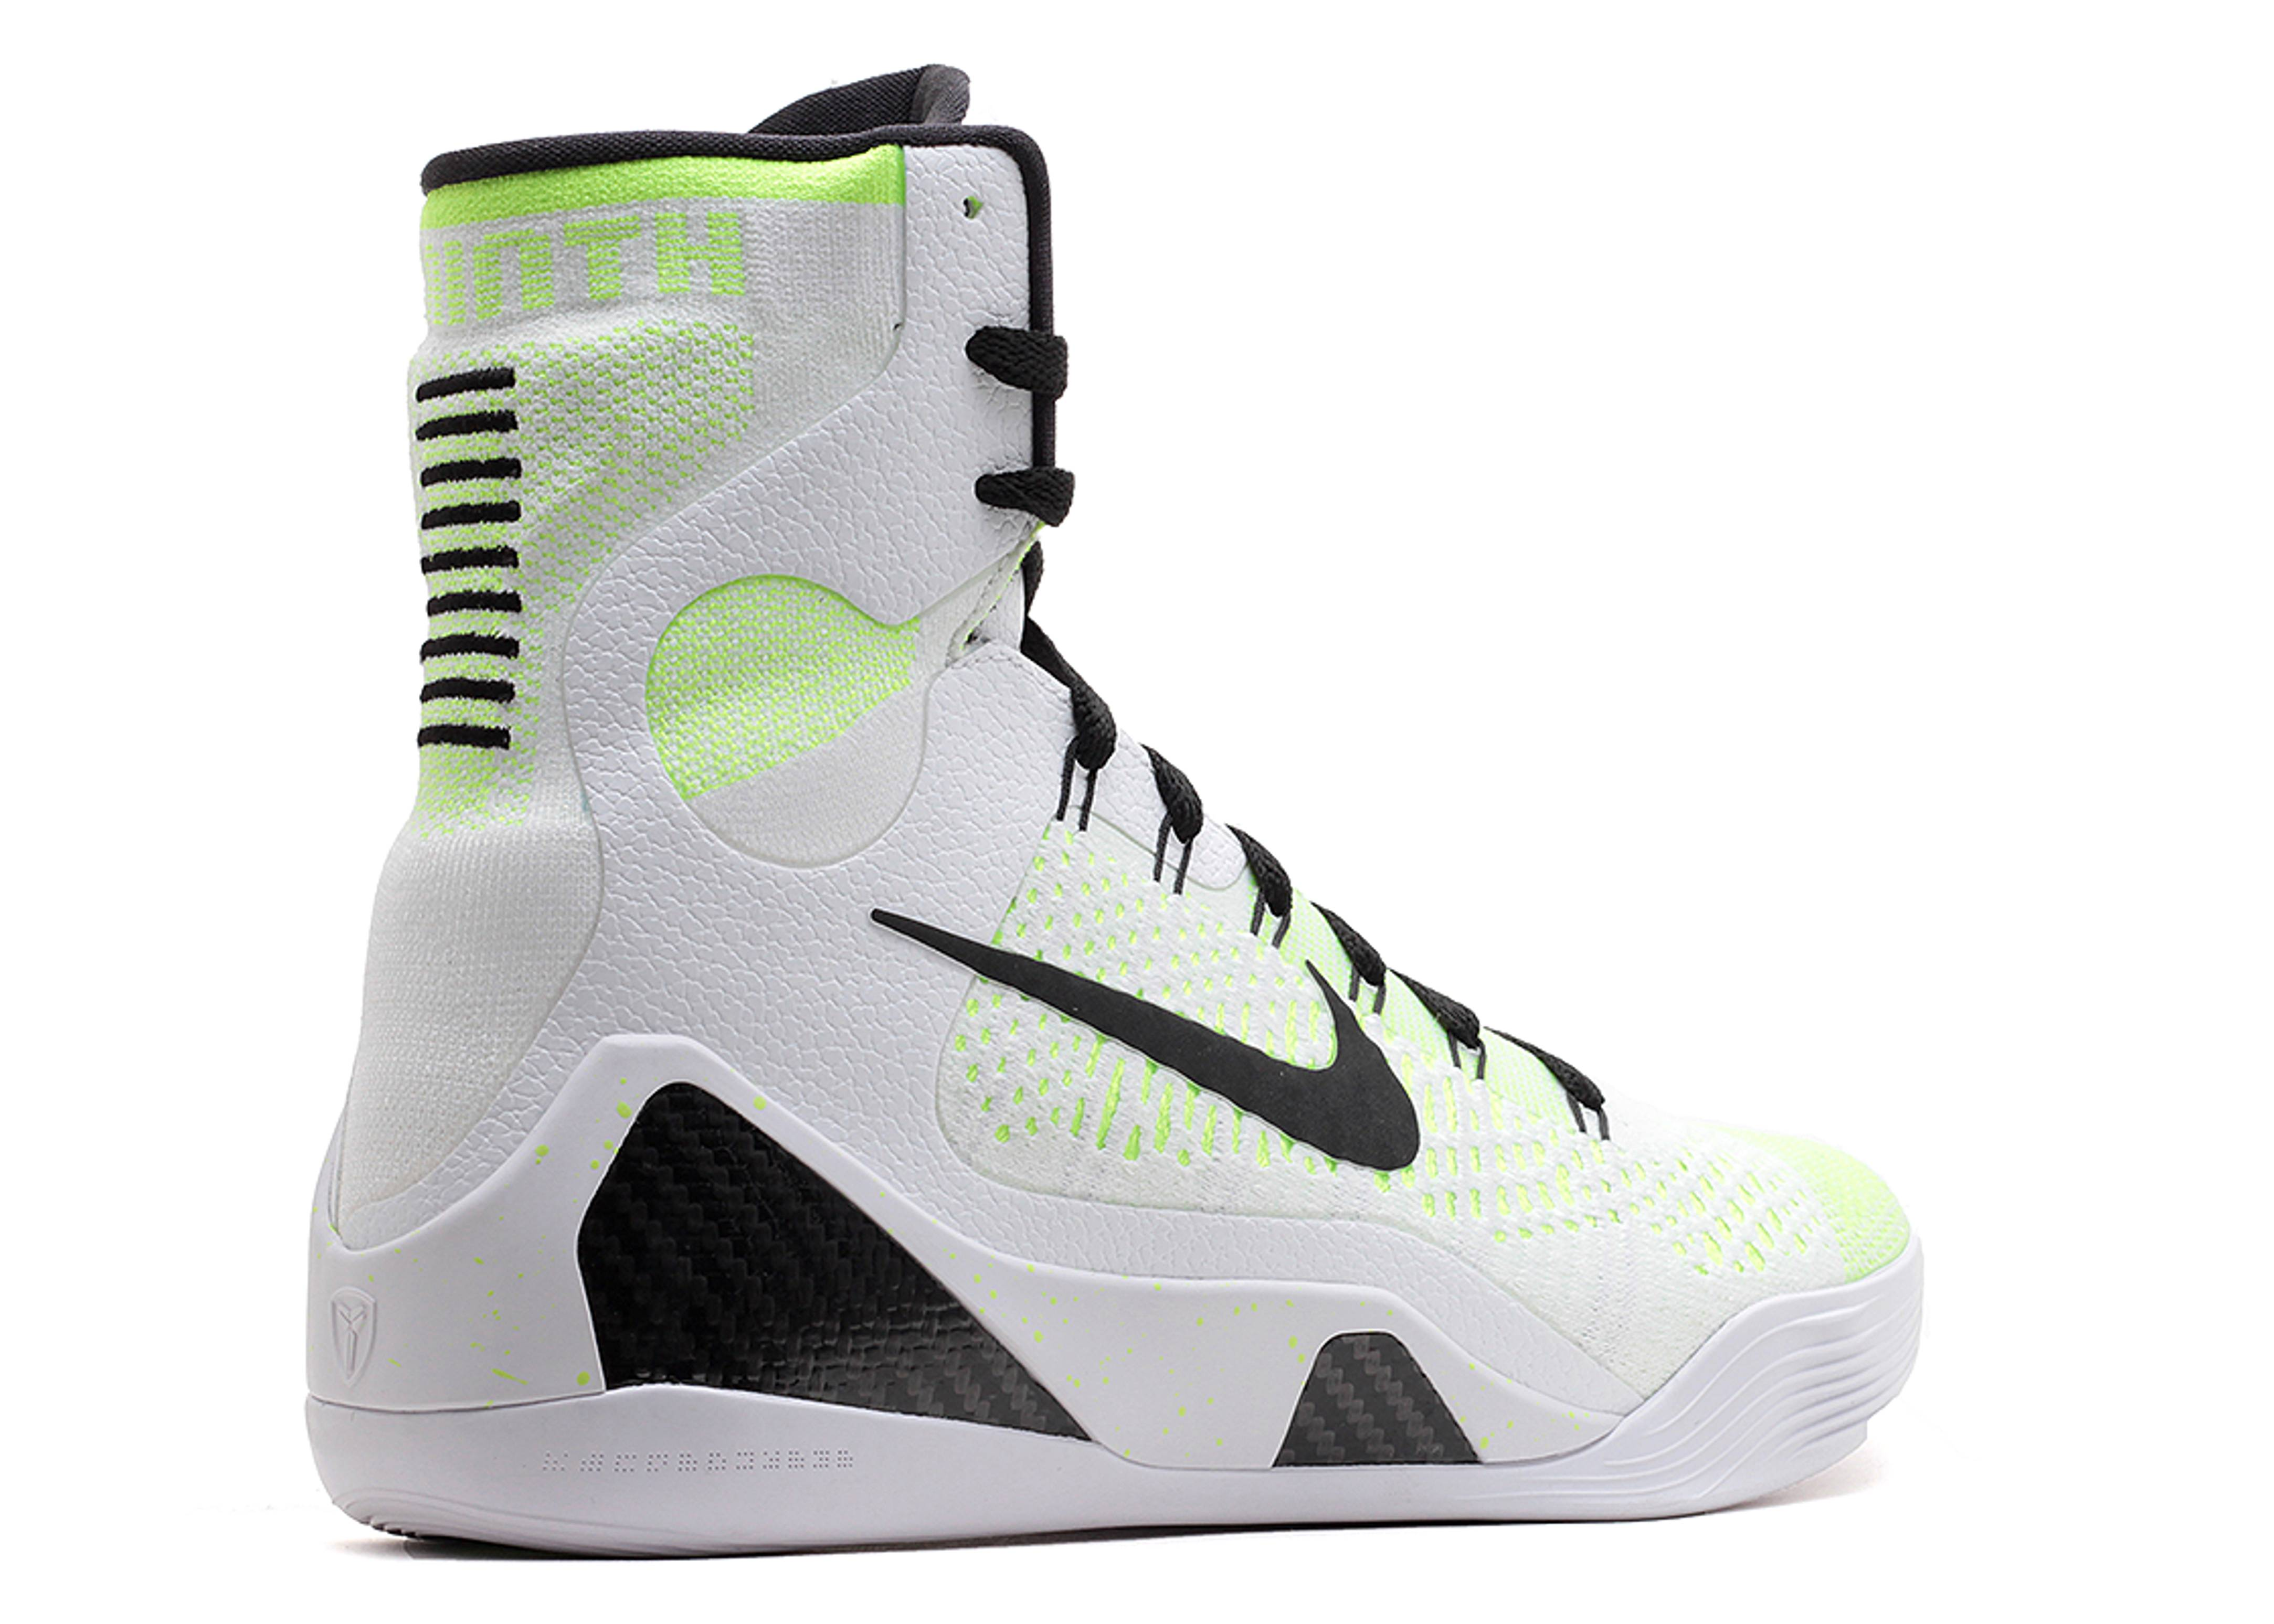 Kobe 9 Elite Premium  Nike  678301 107  Whiteblack. Signs Symptoms Signs Of Stroke. Resource Signs Of Stroke. Foot Print Signs Of Stroke. Dangerous Signs. Homestuck Signs. Woman's Signs. Recommendations Signs. 22nd July Signs Of Stroke